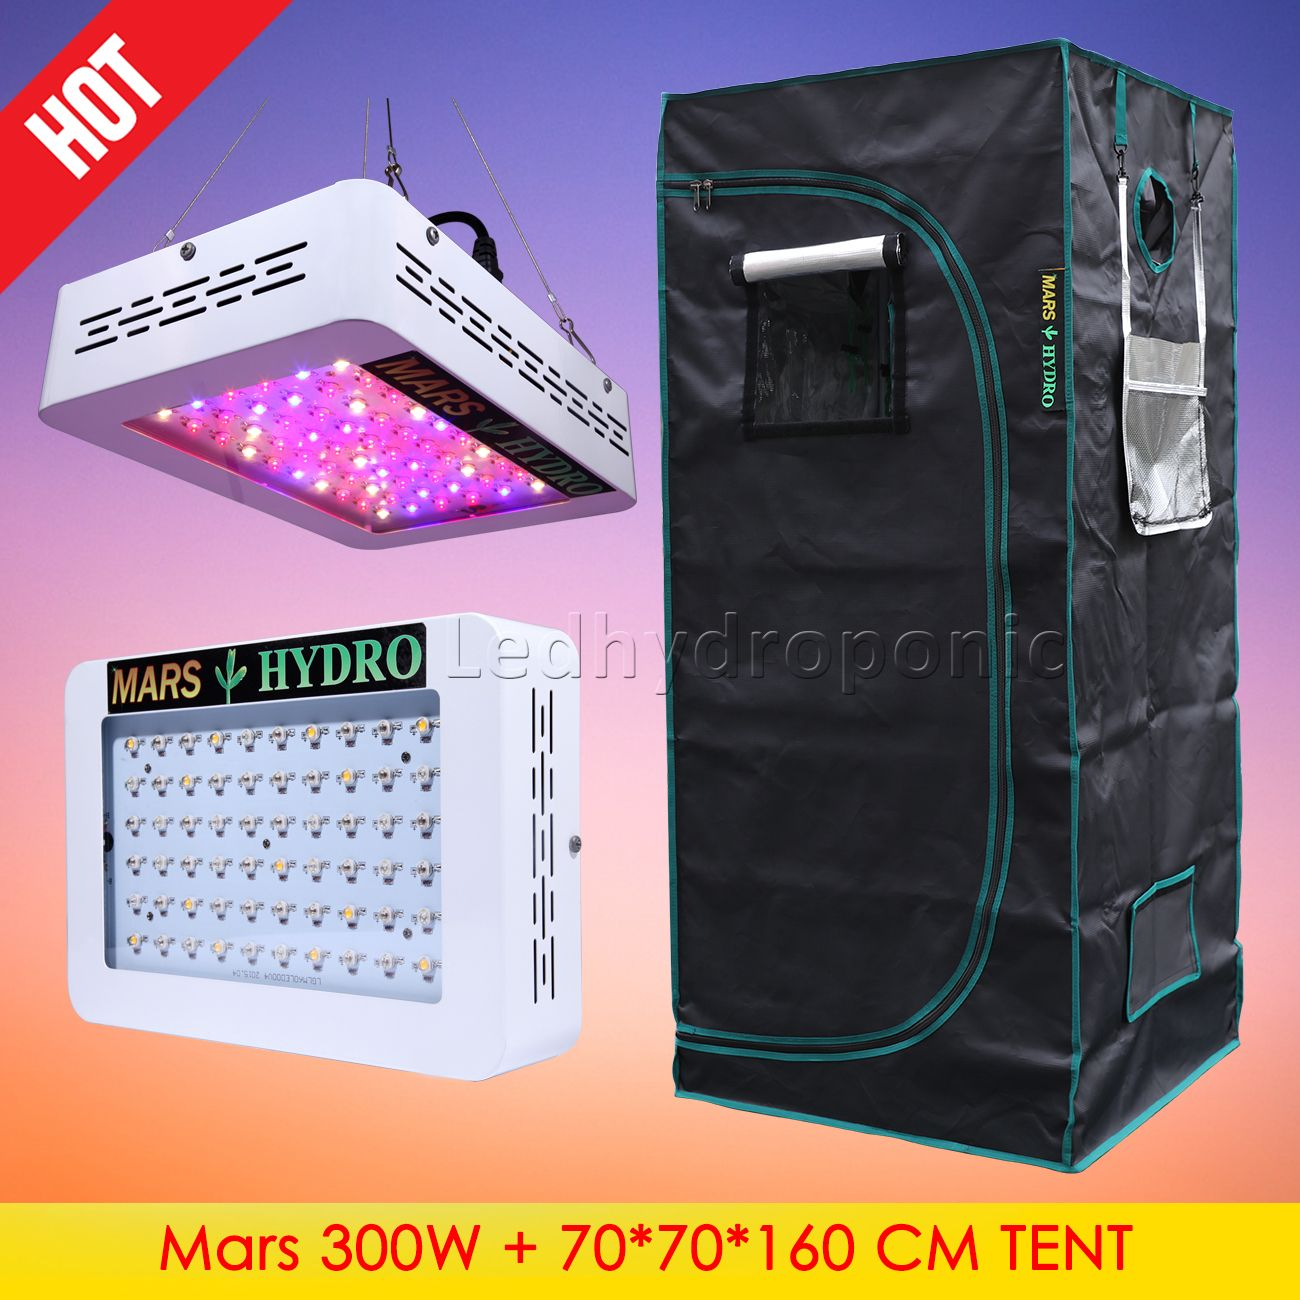 Mars Hydro 300w Led Grow Light 70x70x160 Cm Indoor Grow Tent